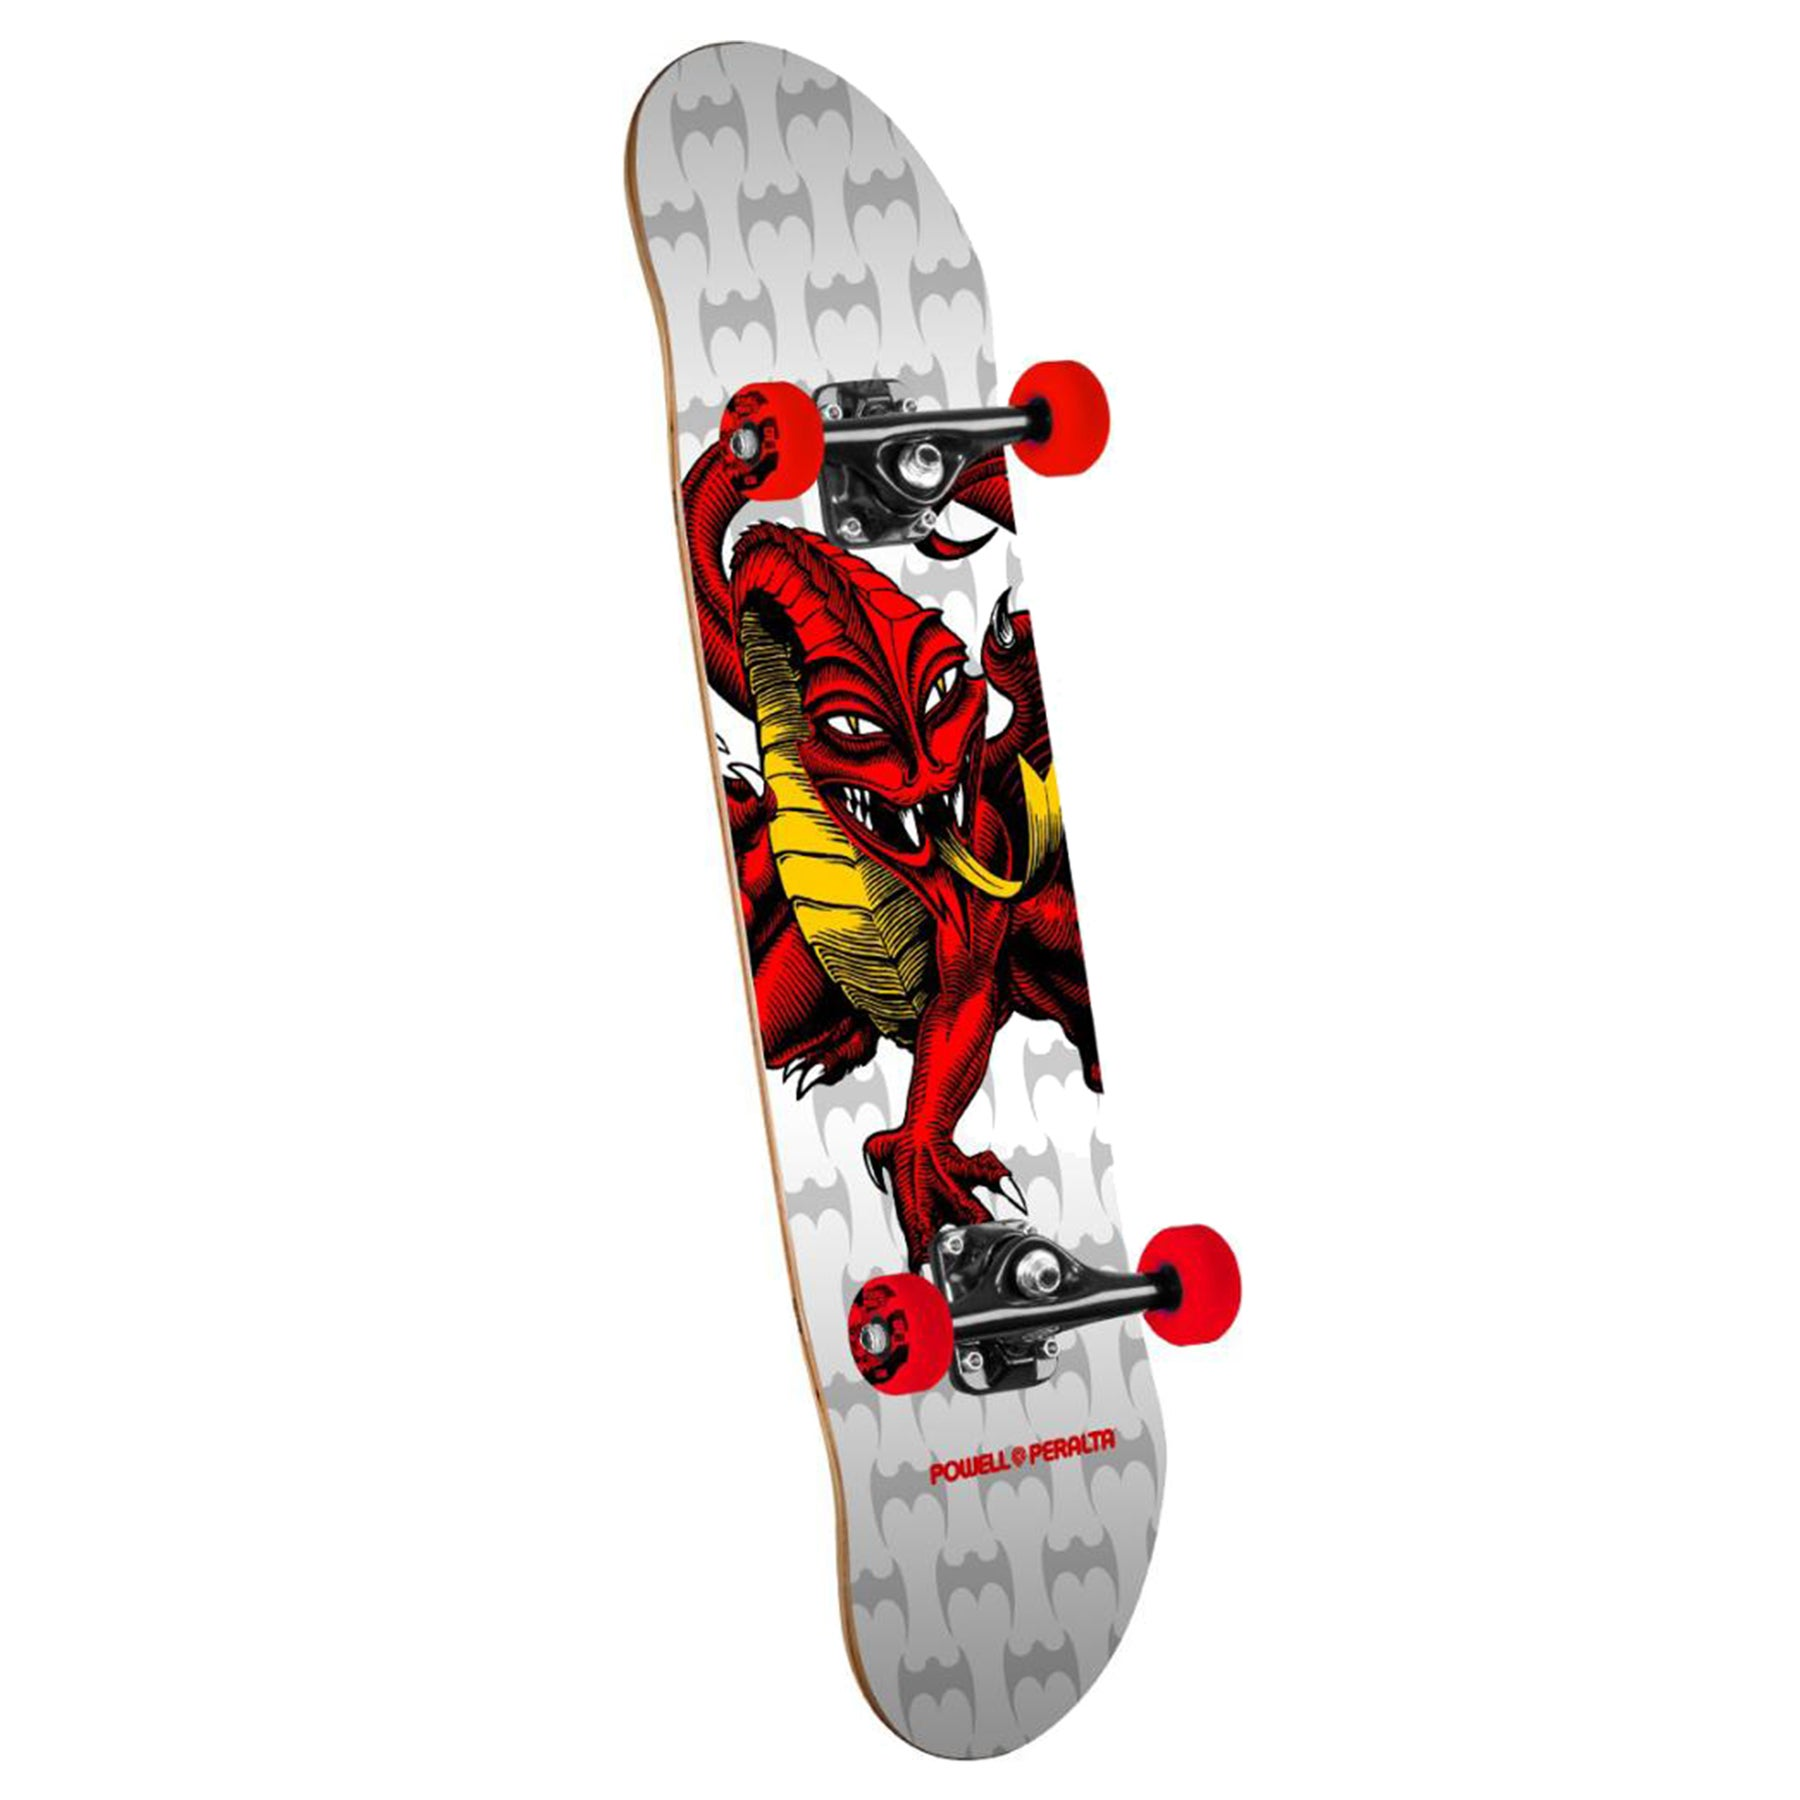 Powell Cab Dragon 7.75 Inch Complete Skateboard - White/red